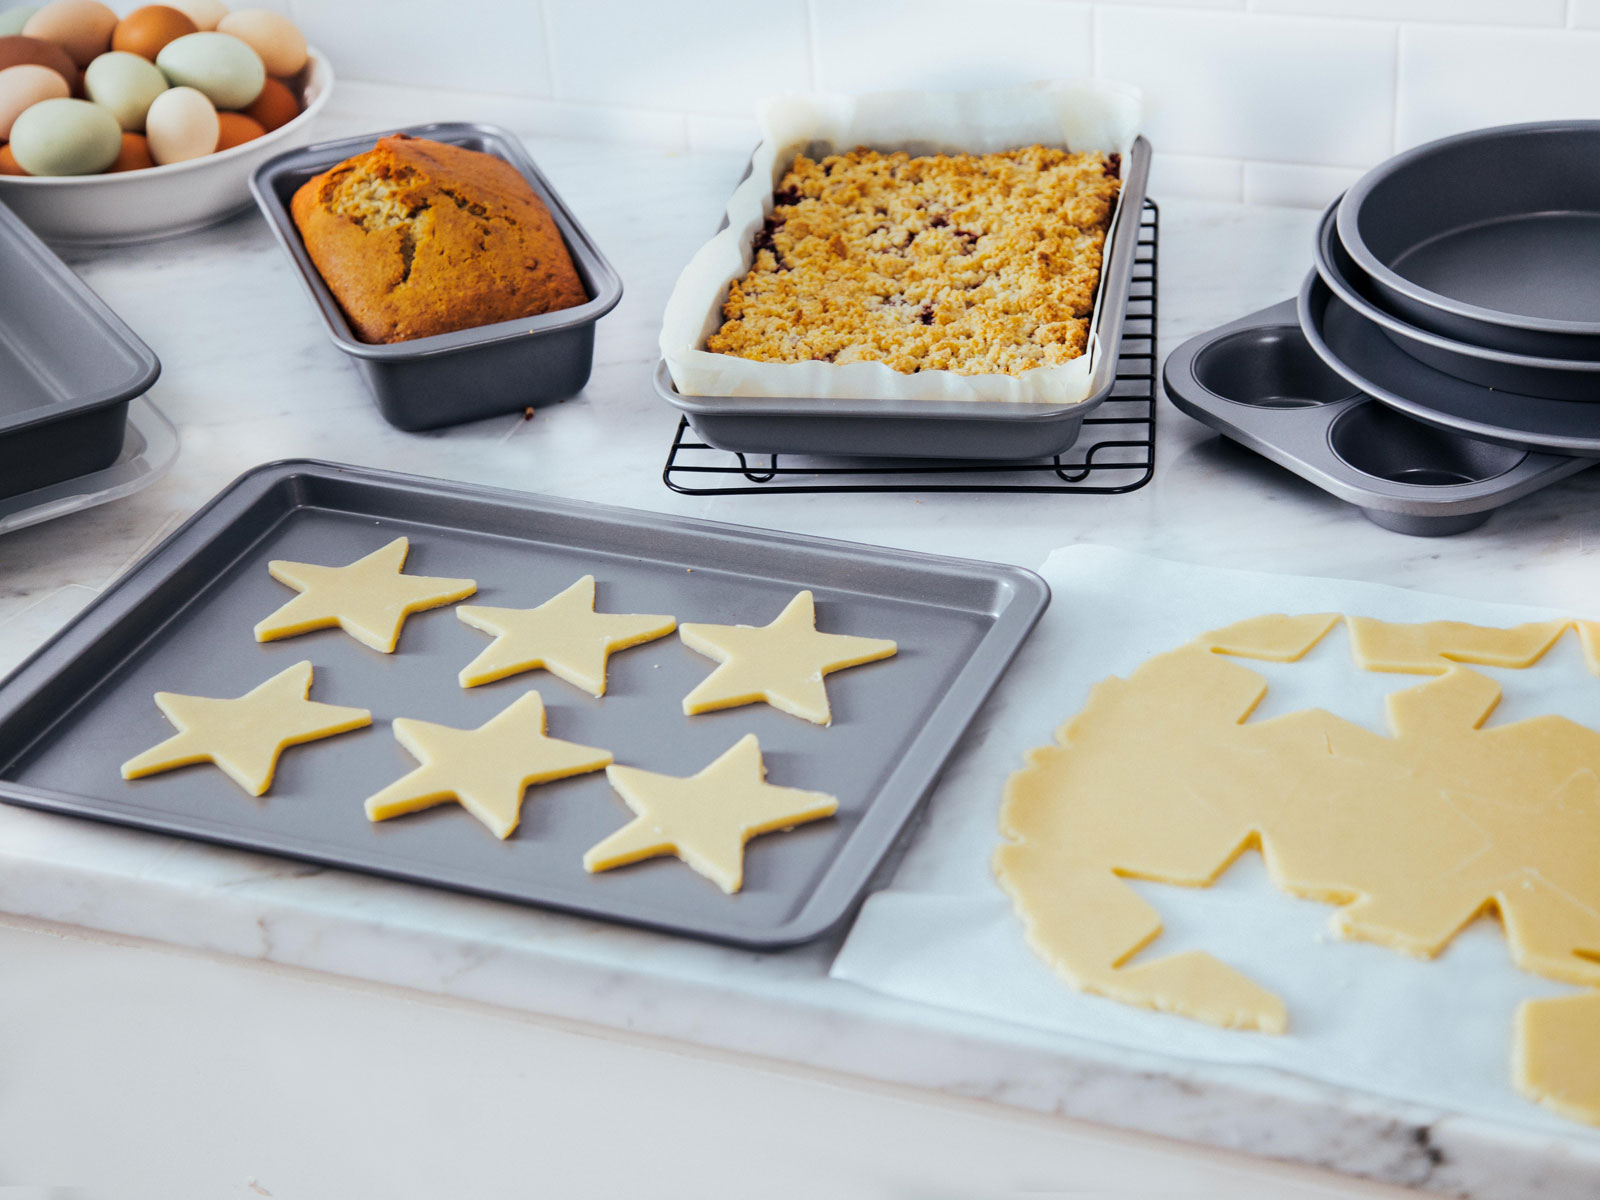 Martha Stewart Essentials Bakeware